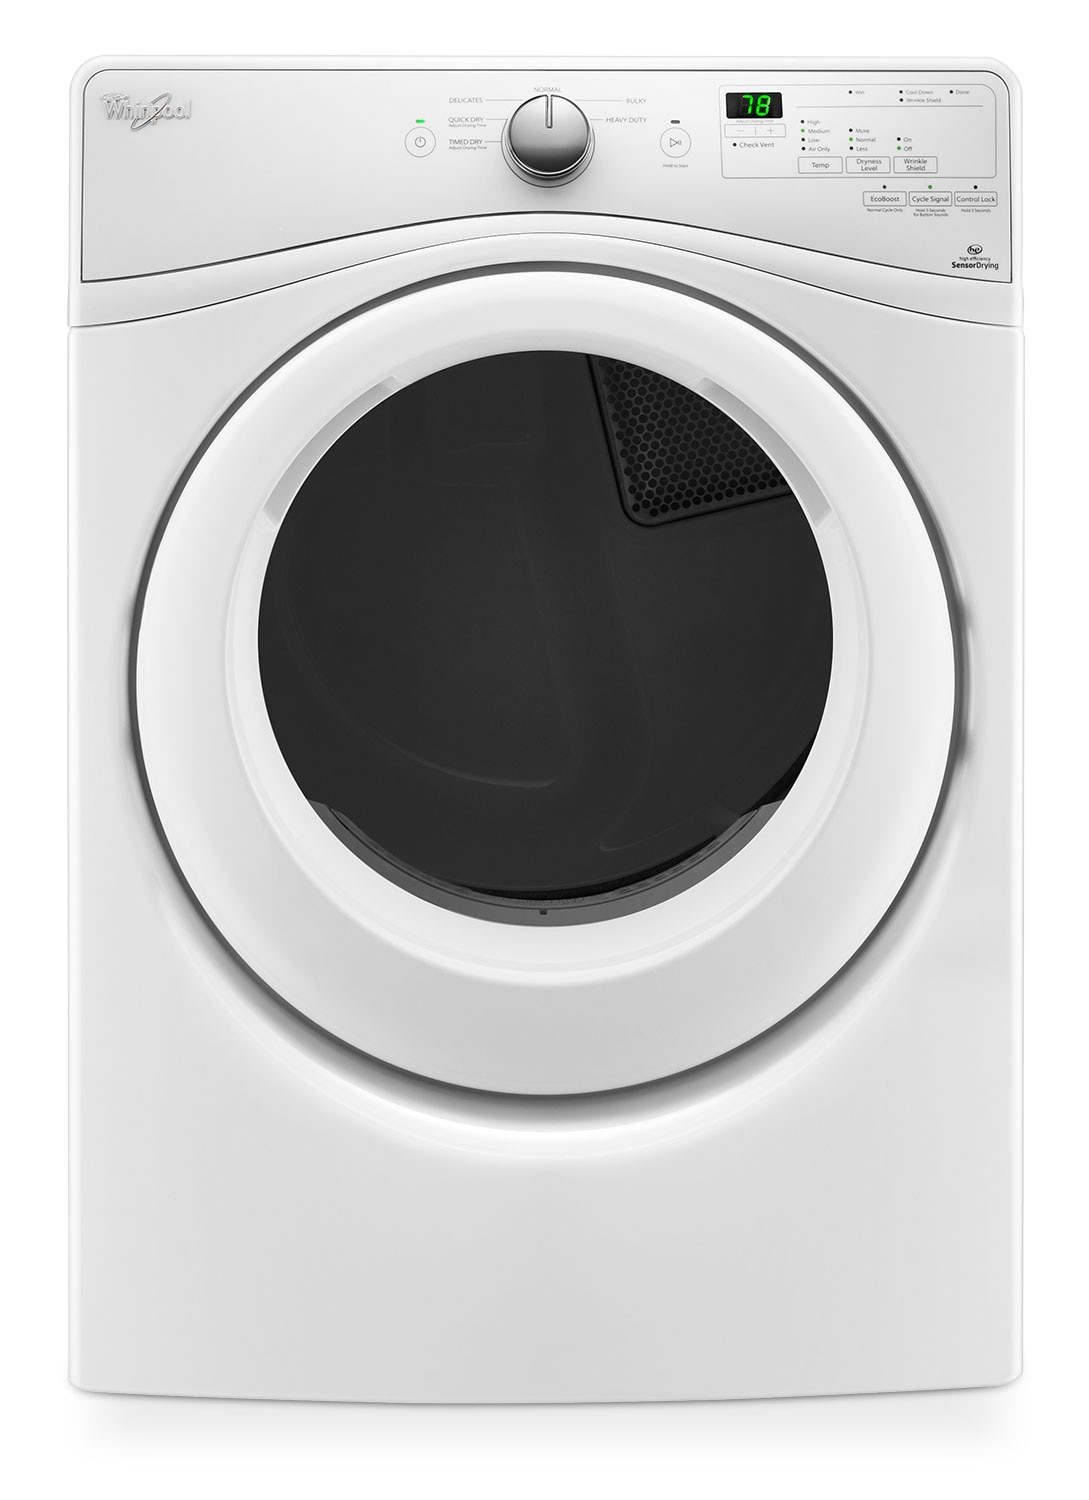 Whirlpool 7.4 Cu. Ft. Gas Dryer – WGD75HEFW